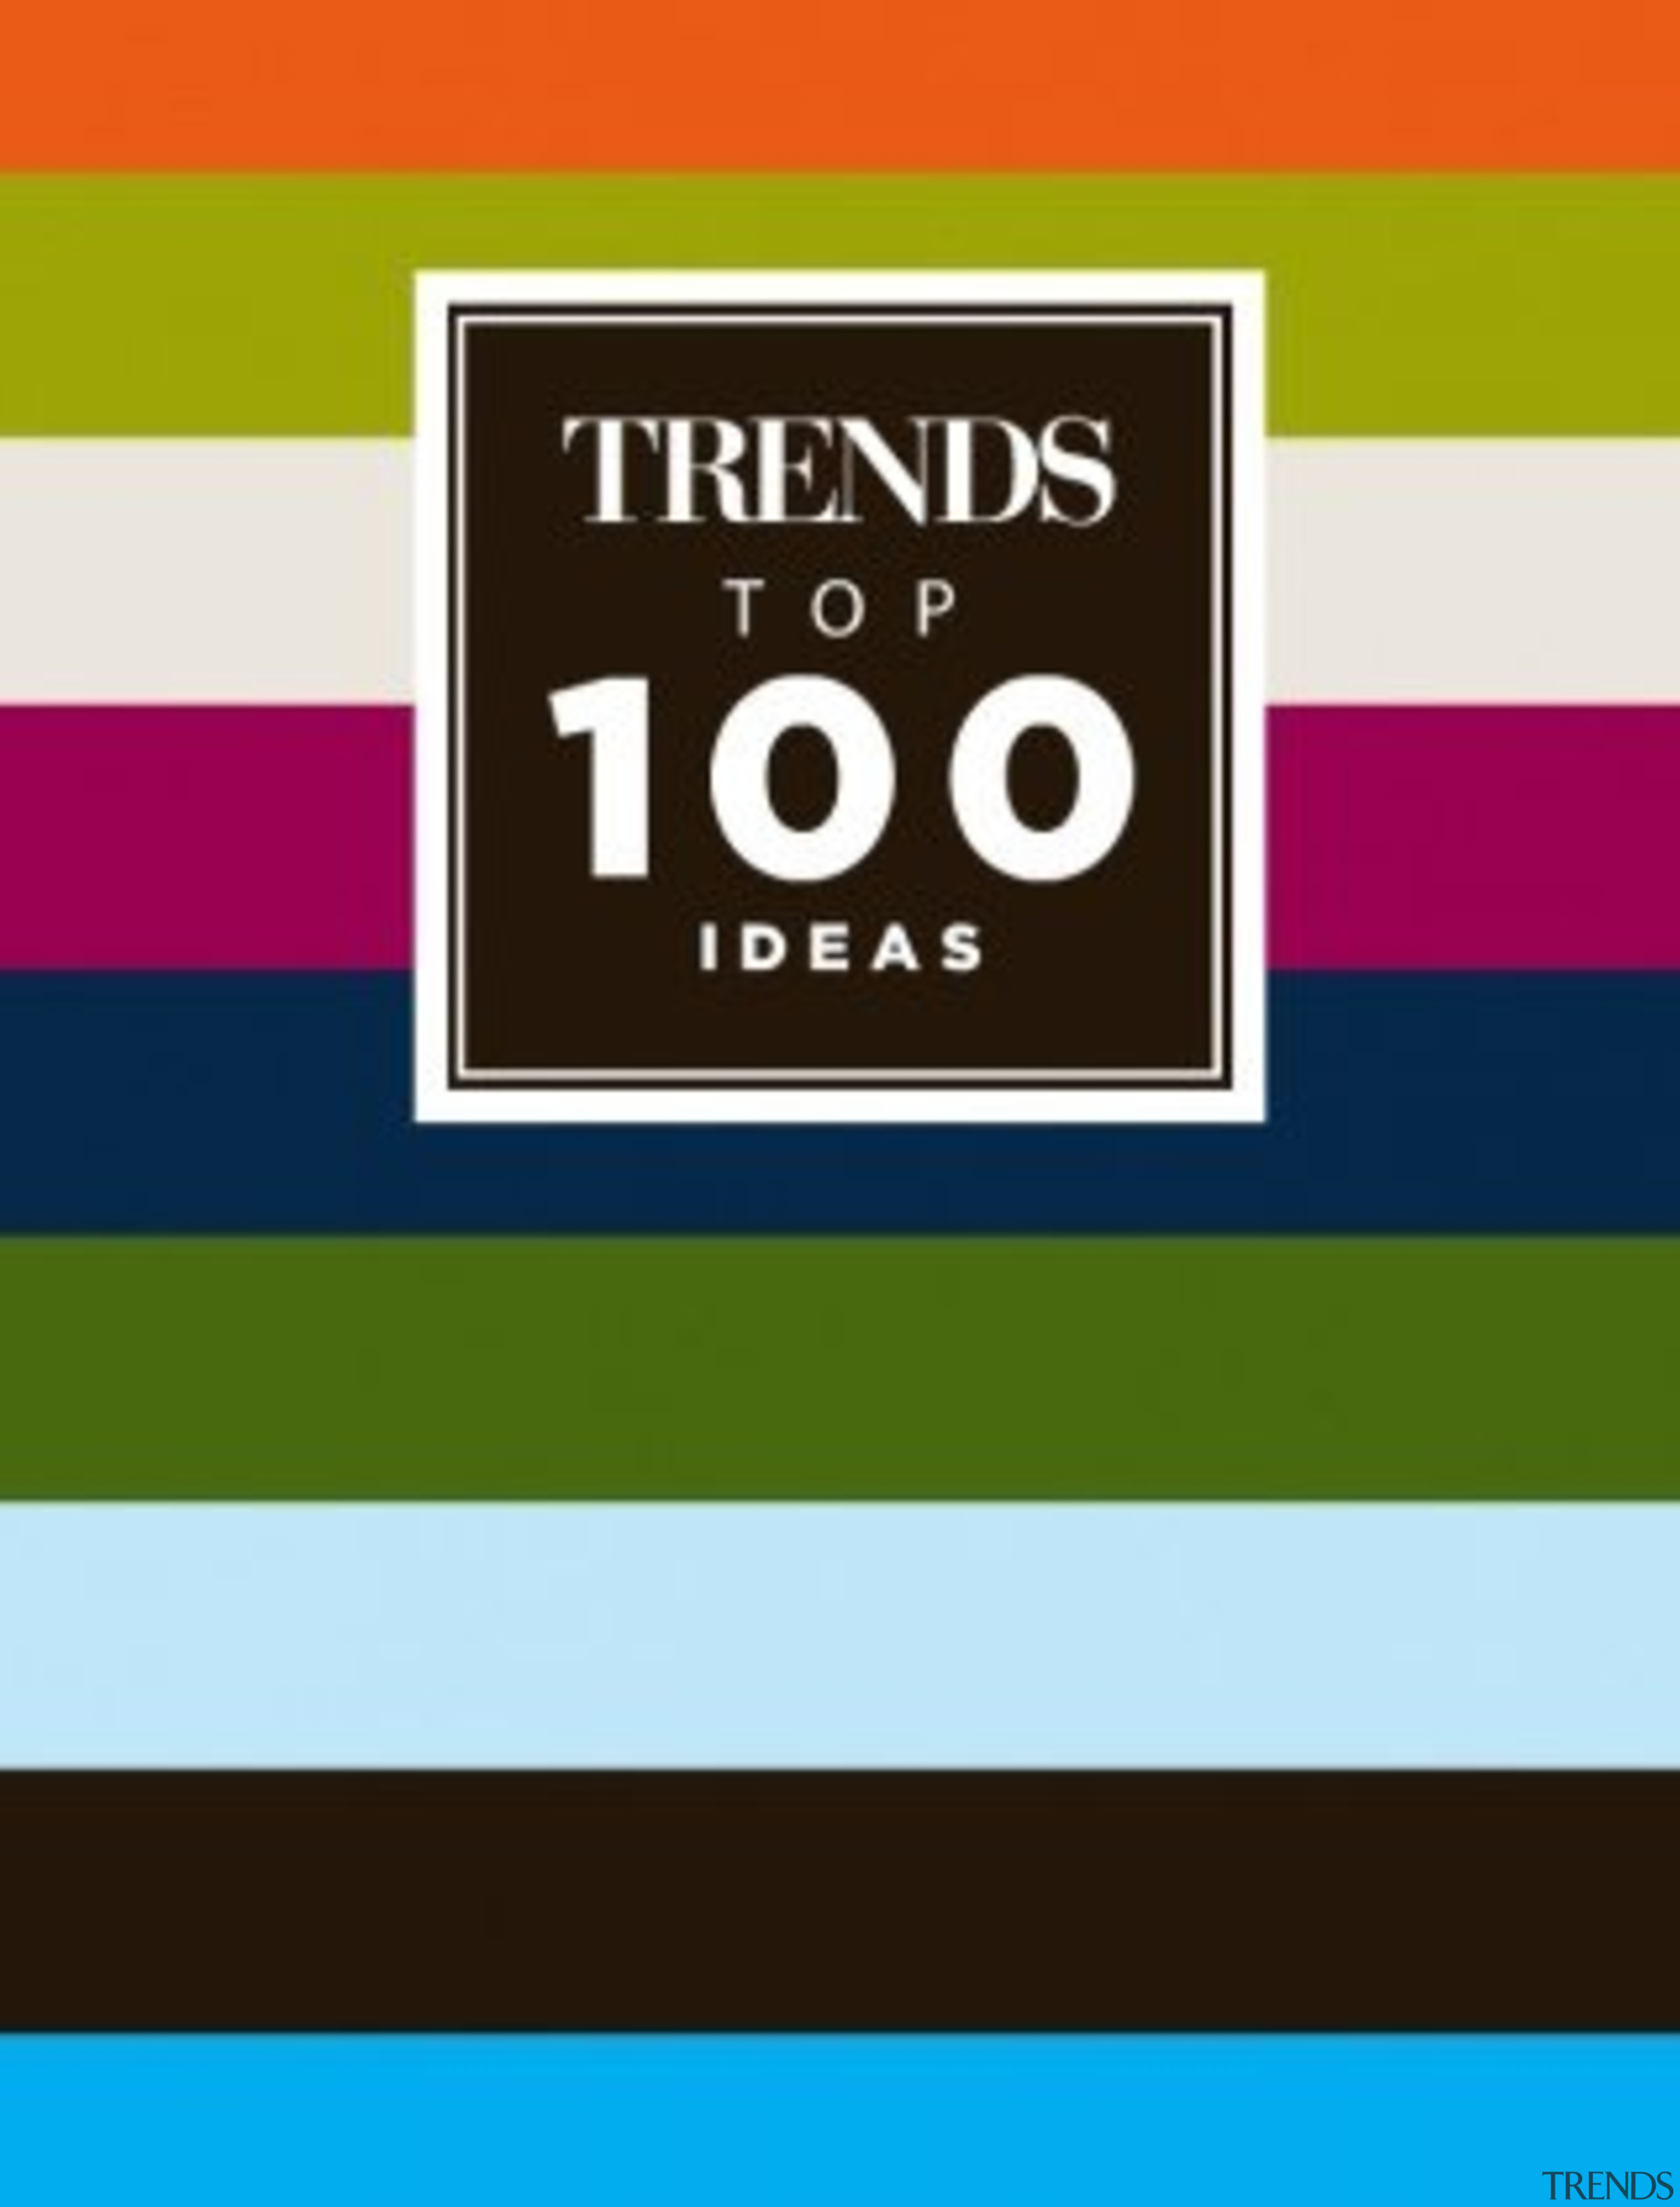 Nz Top 100 - area | brand | area, brand, font, graphic design, line, logo, product, text